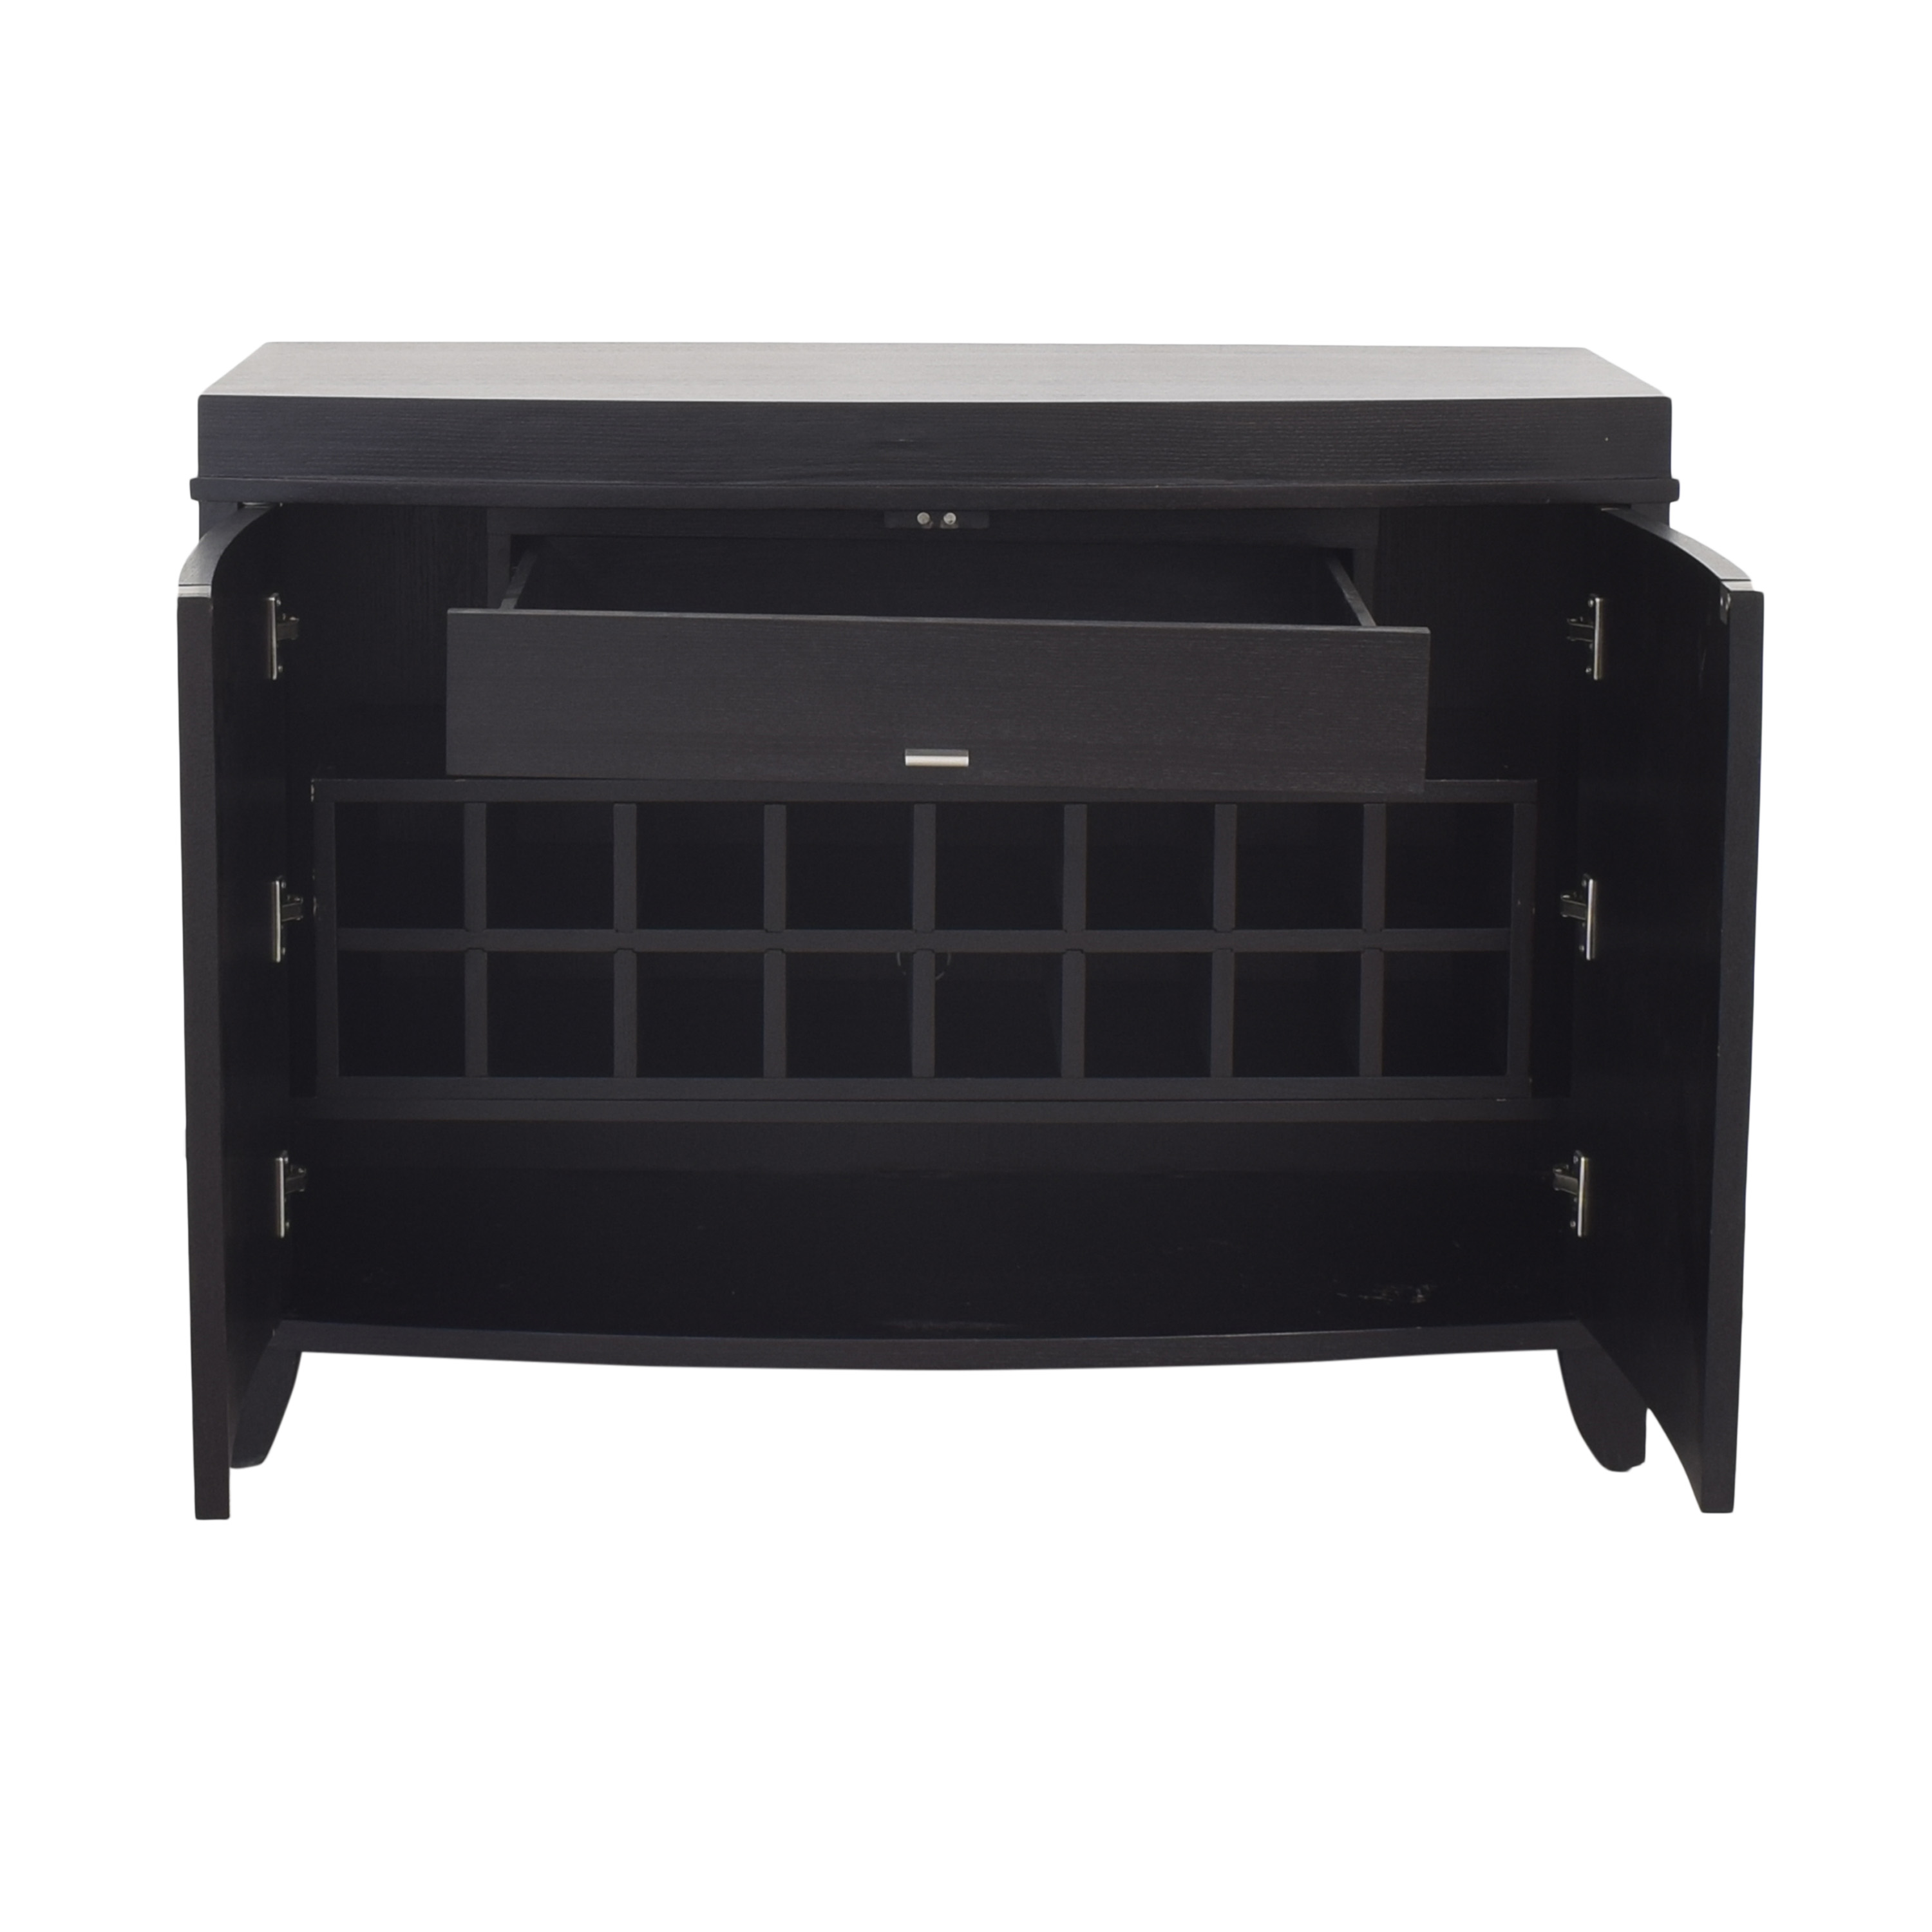 shop Crate & Barrel Bar Cabinet with Wine and Glass Storage Crate & Barrel Cabinets & Sideboards